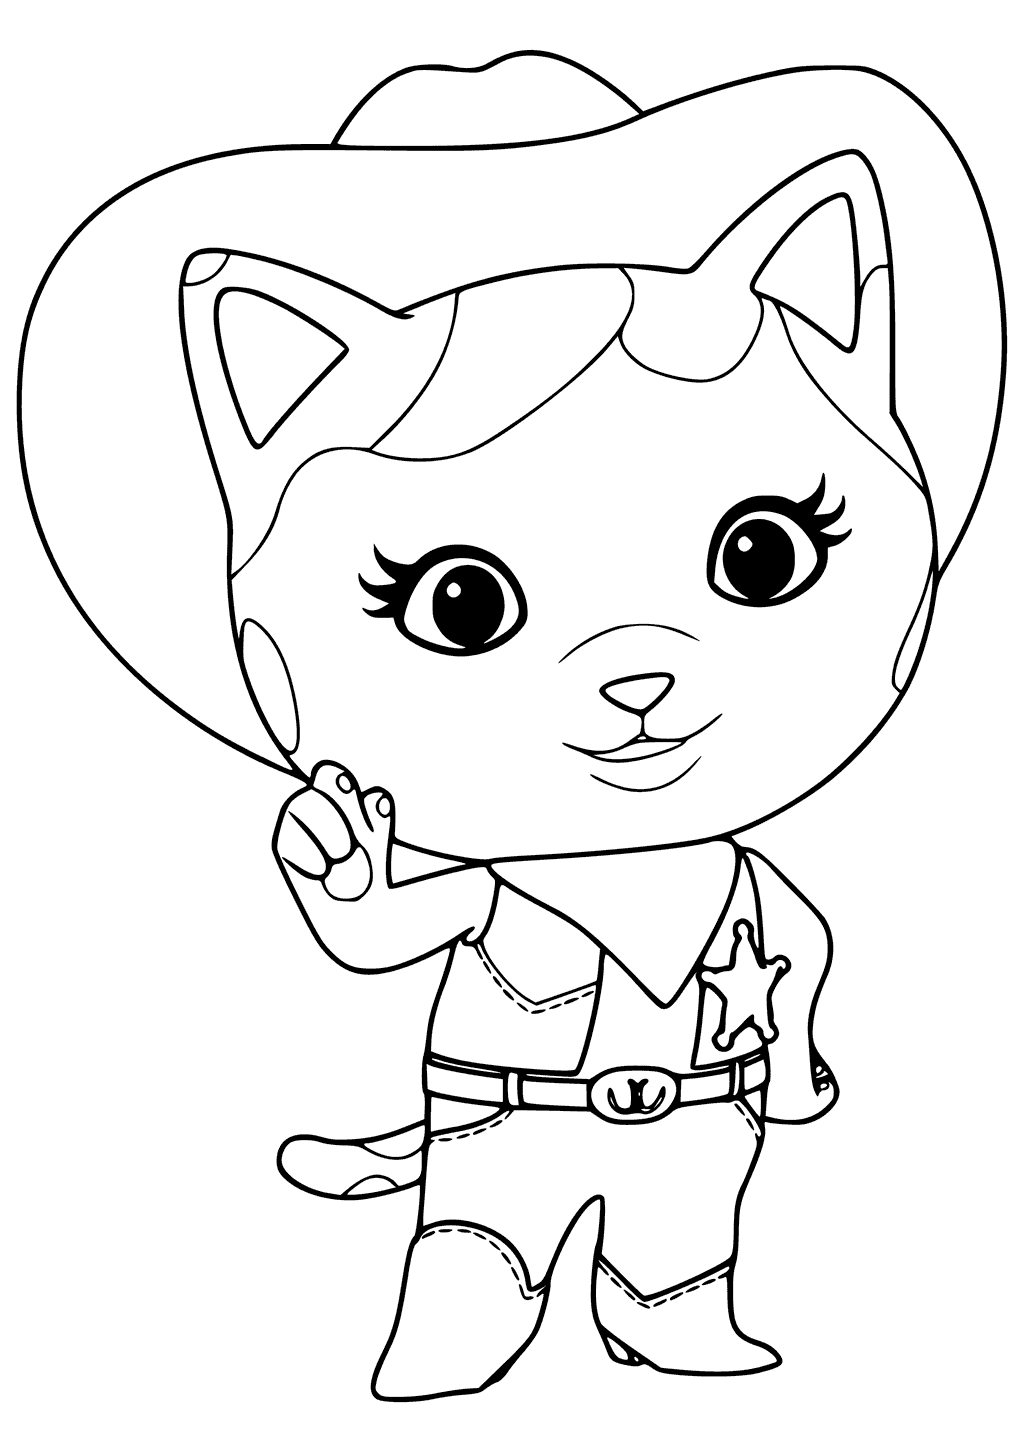 Sheriff Callie Coloring Pages Best Coloring Pages For Kids In 2020 Coloring Pages Star Coloring Pages Sheriff Callie